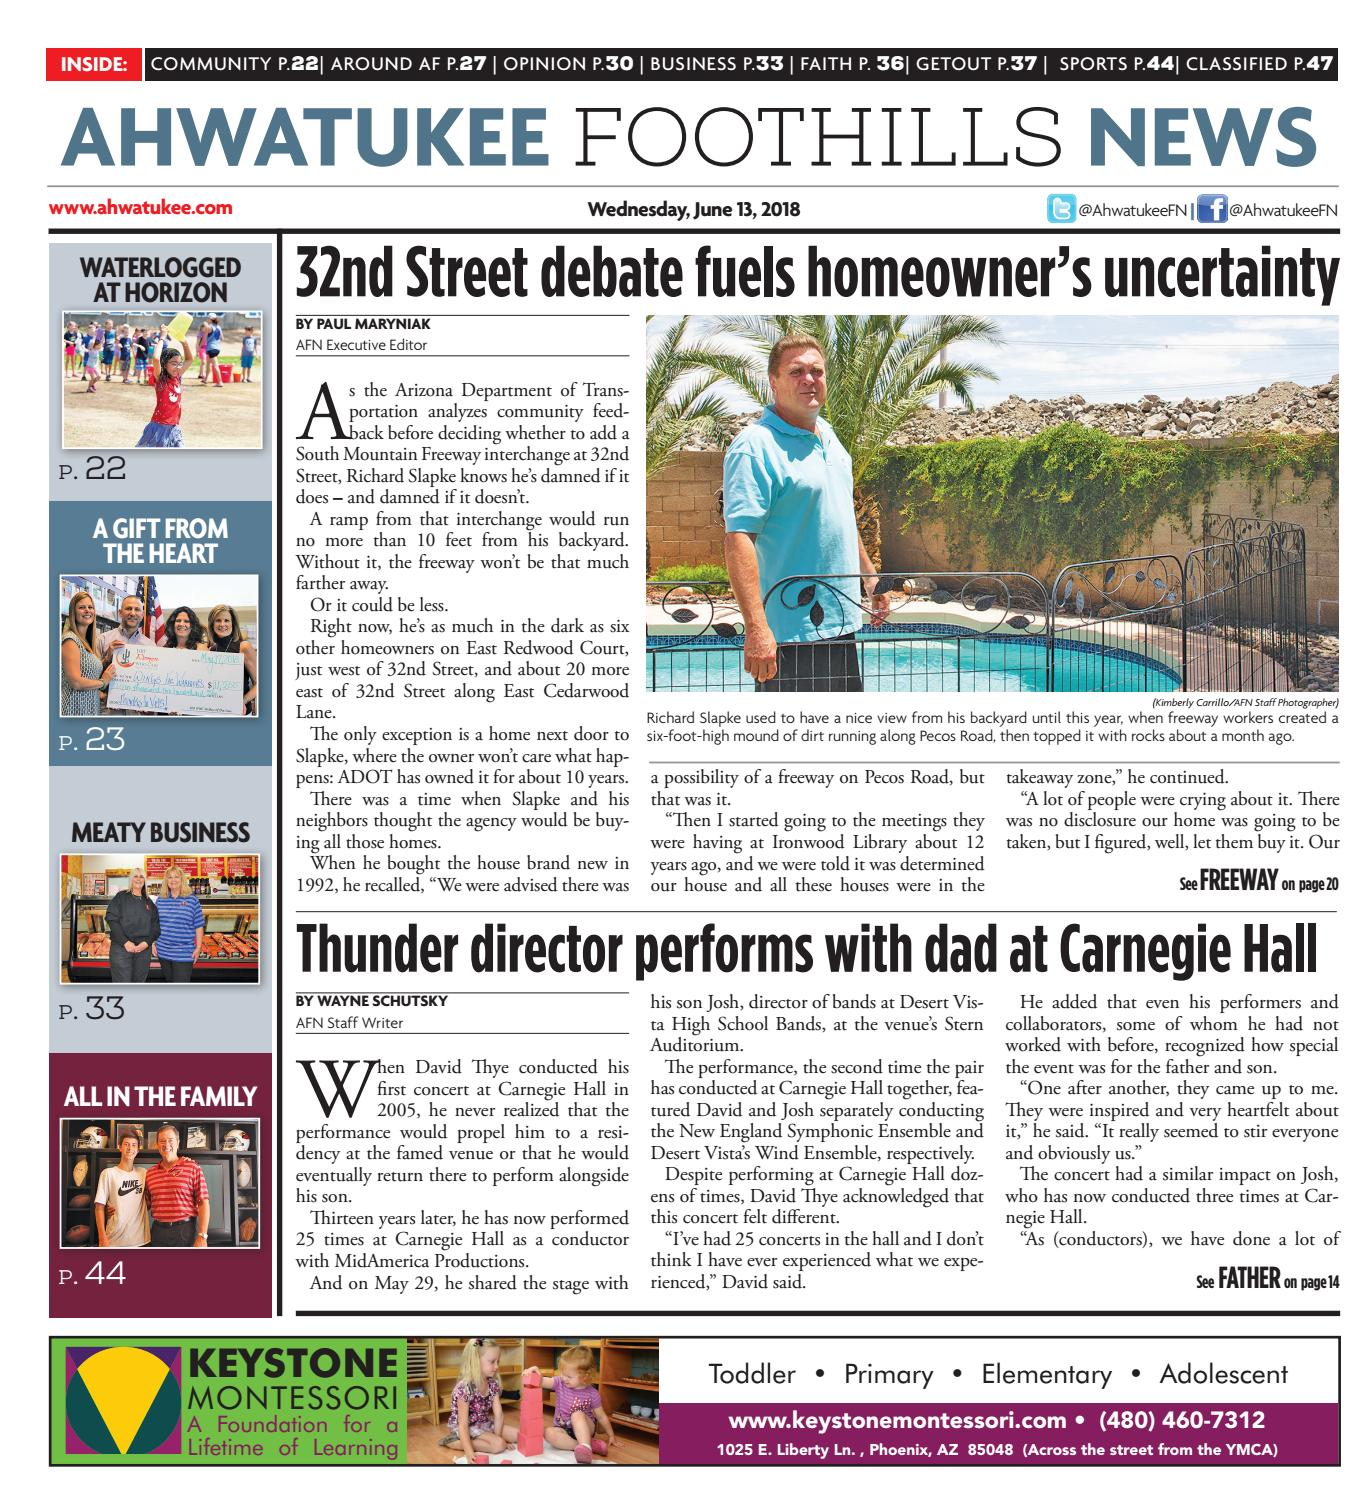 Ahwatukee Foothills News - June 13, 2018 by Times Media